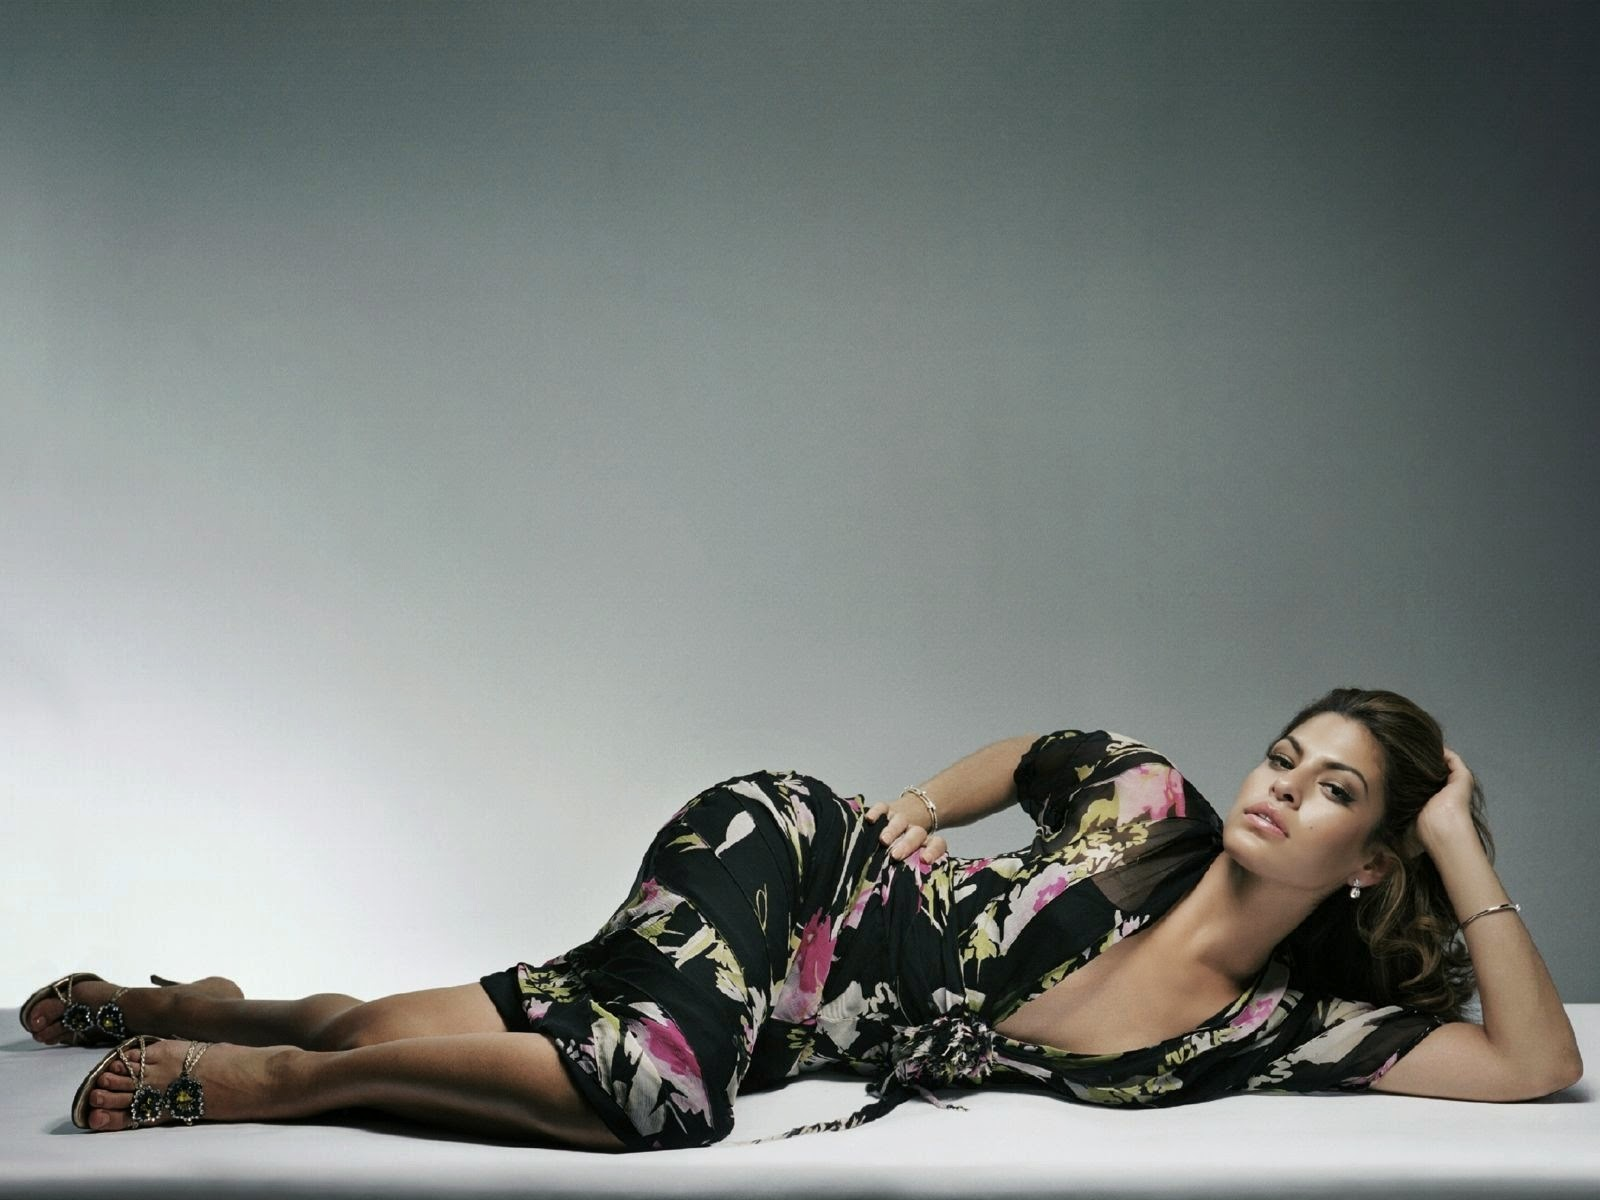 Eva mendes sexy hot alone sleeping wallpaper